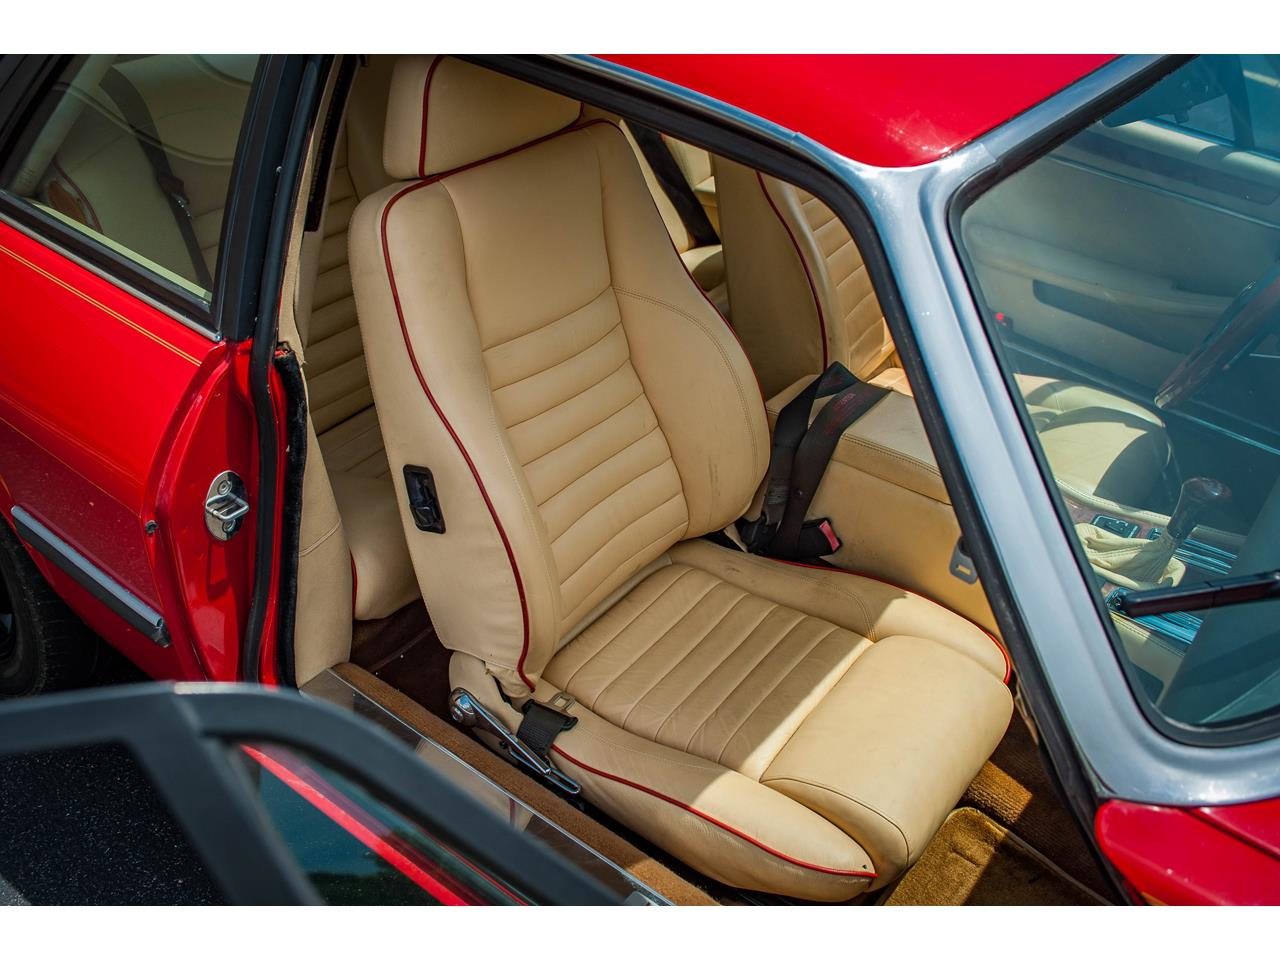 Large Picture of 1989 Jaguar XJS located in O'Fallon Illinois - $20,000.00 Offered by Gateway Classic Cars - St. Louis - QB9L